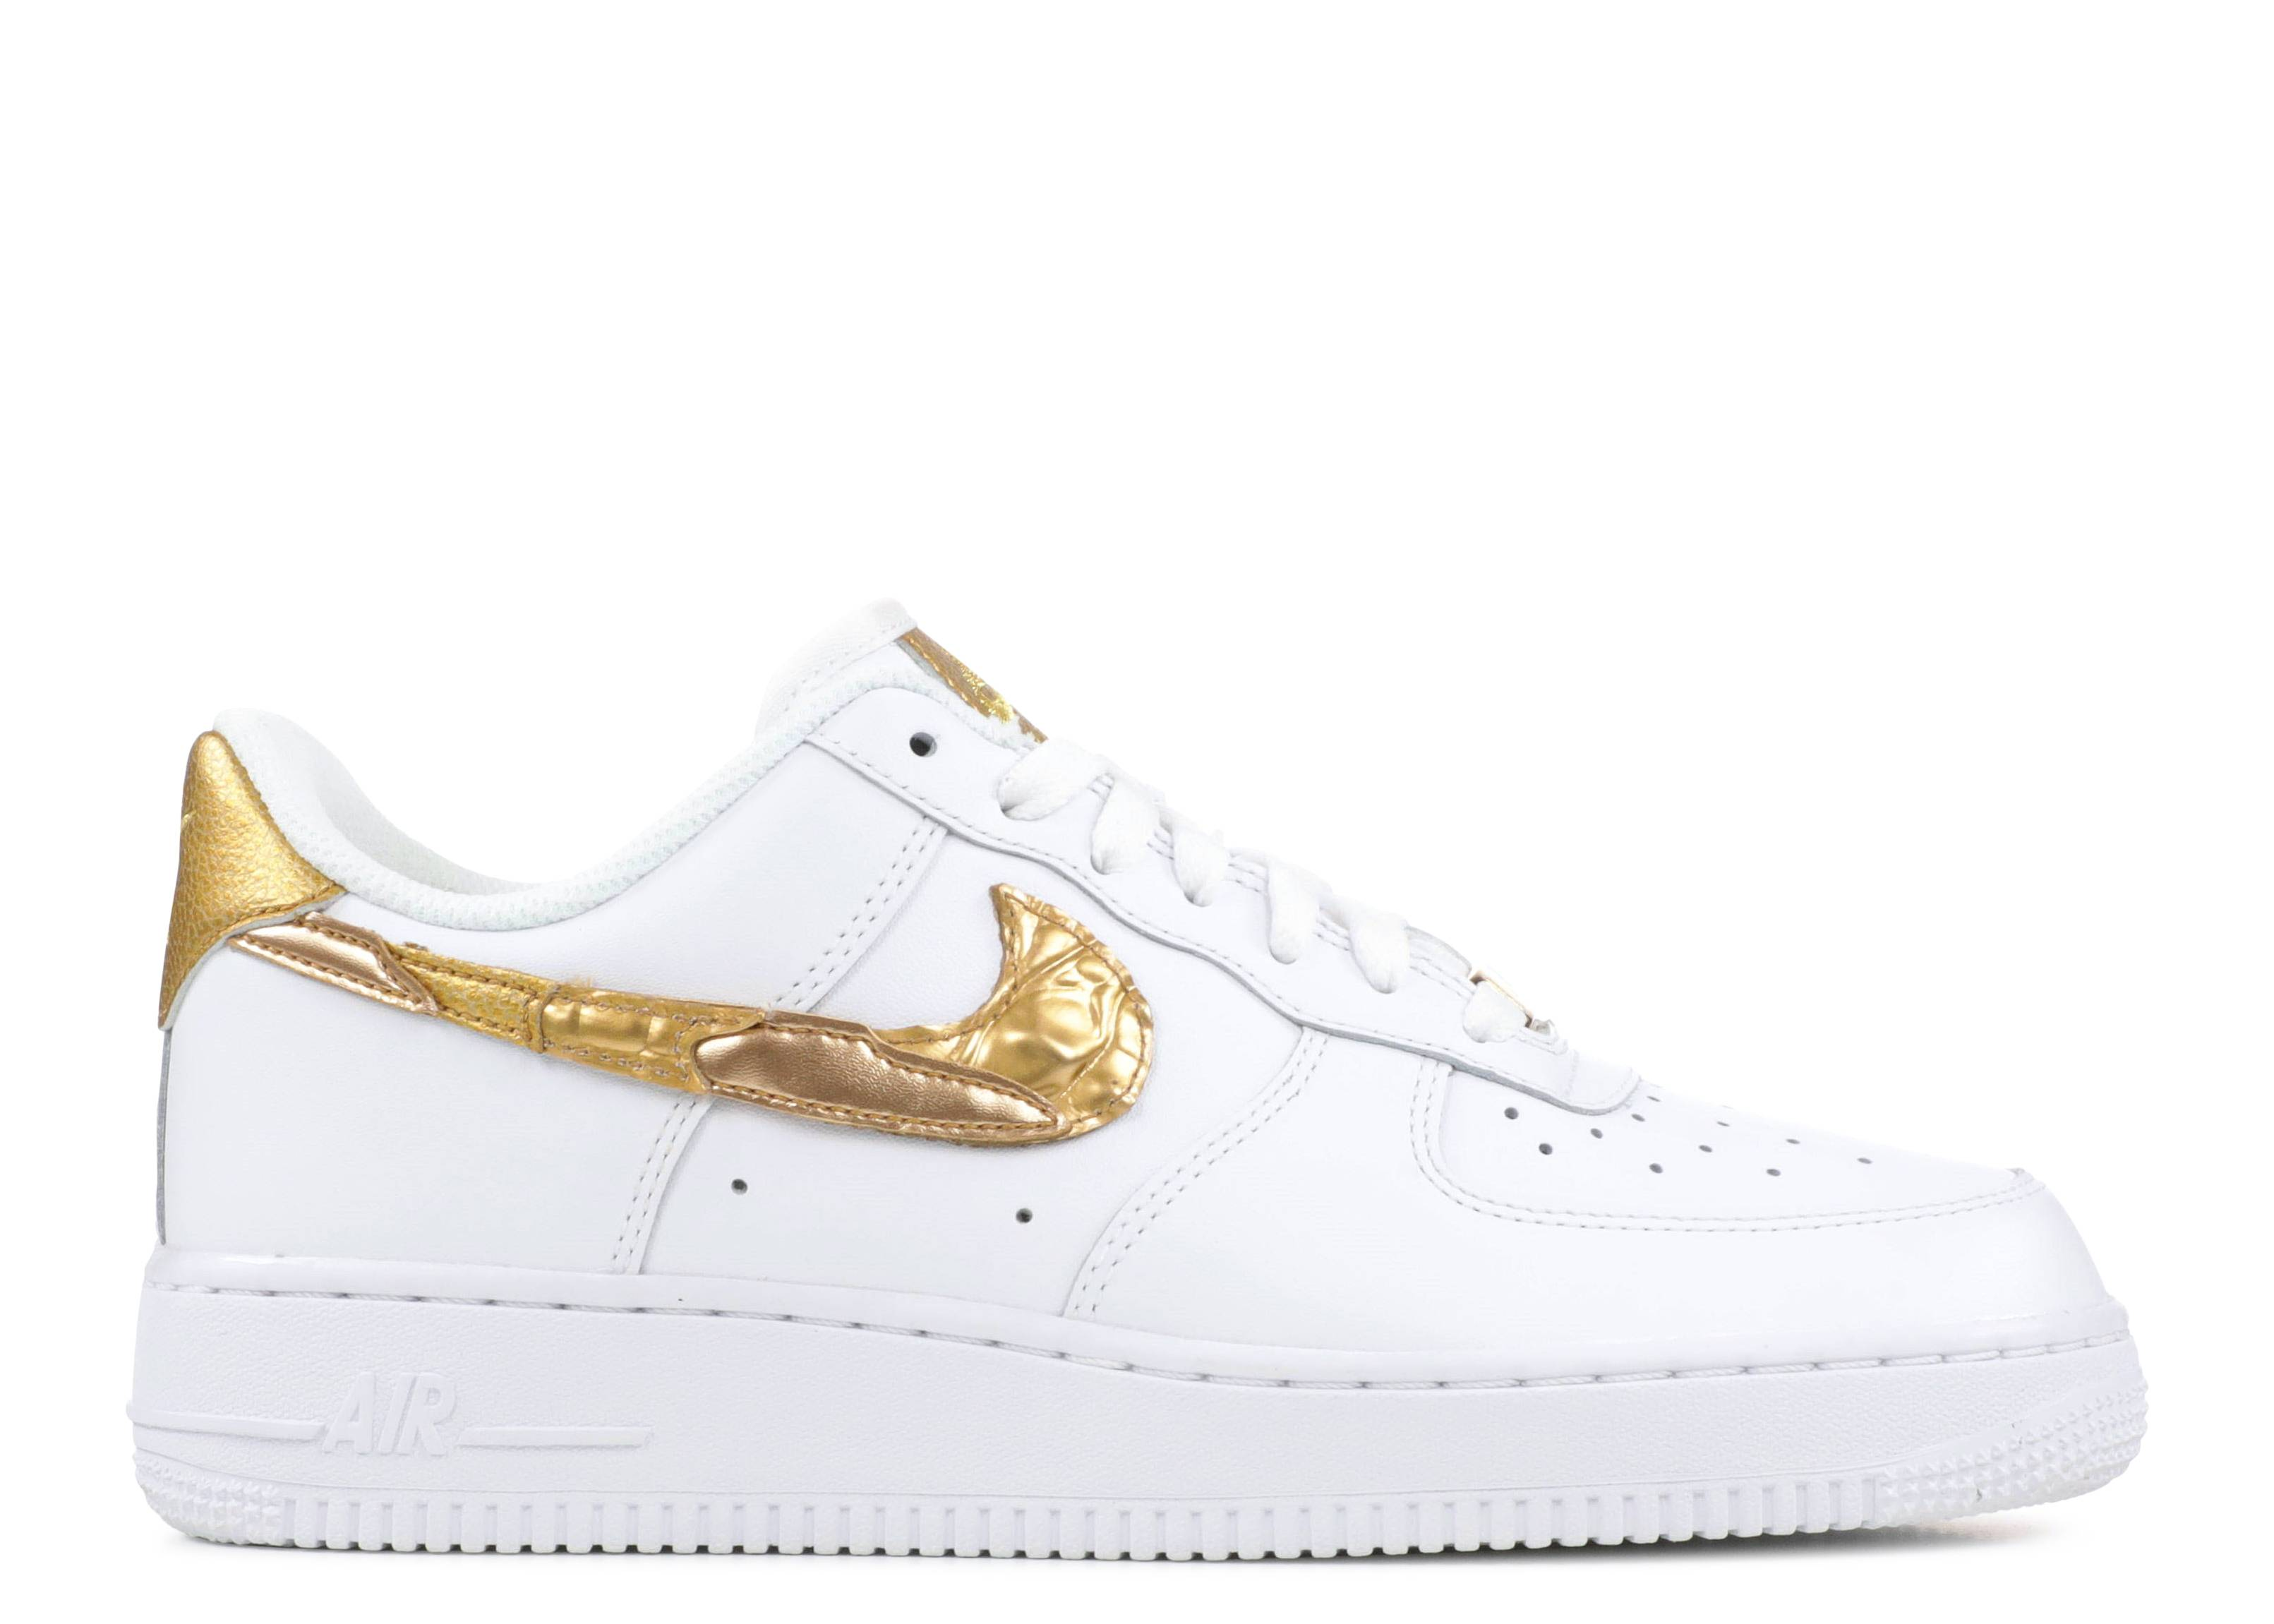 Desaparecido interior Hacia fuera  CR7 X Air Force 1 Low 'Golden Patchwork' - Nike - AQ0666 100 - white/gold |  Flight Club